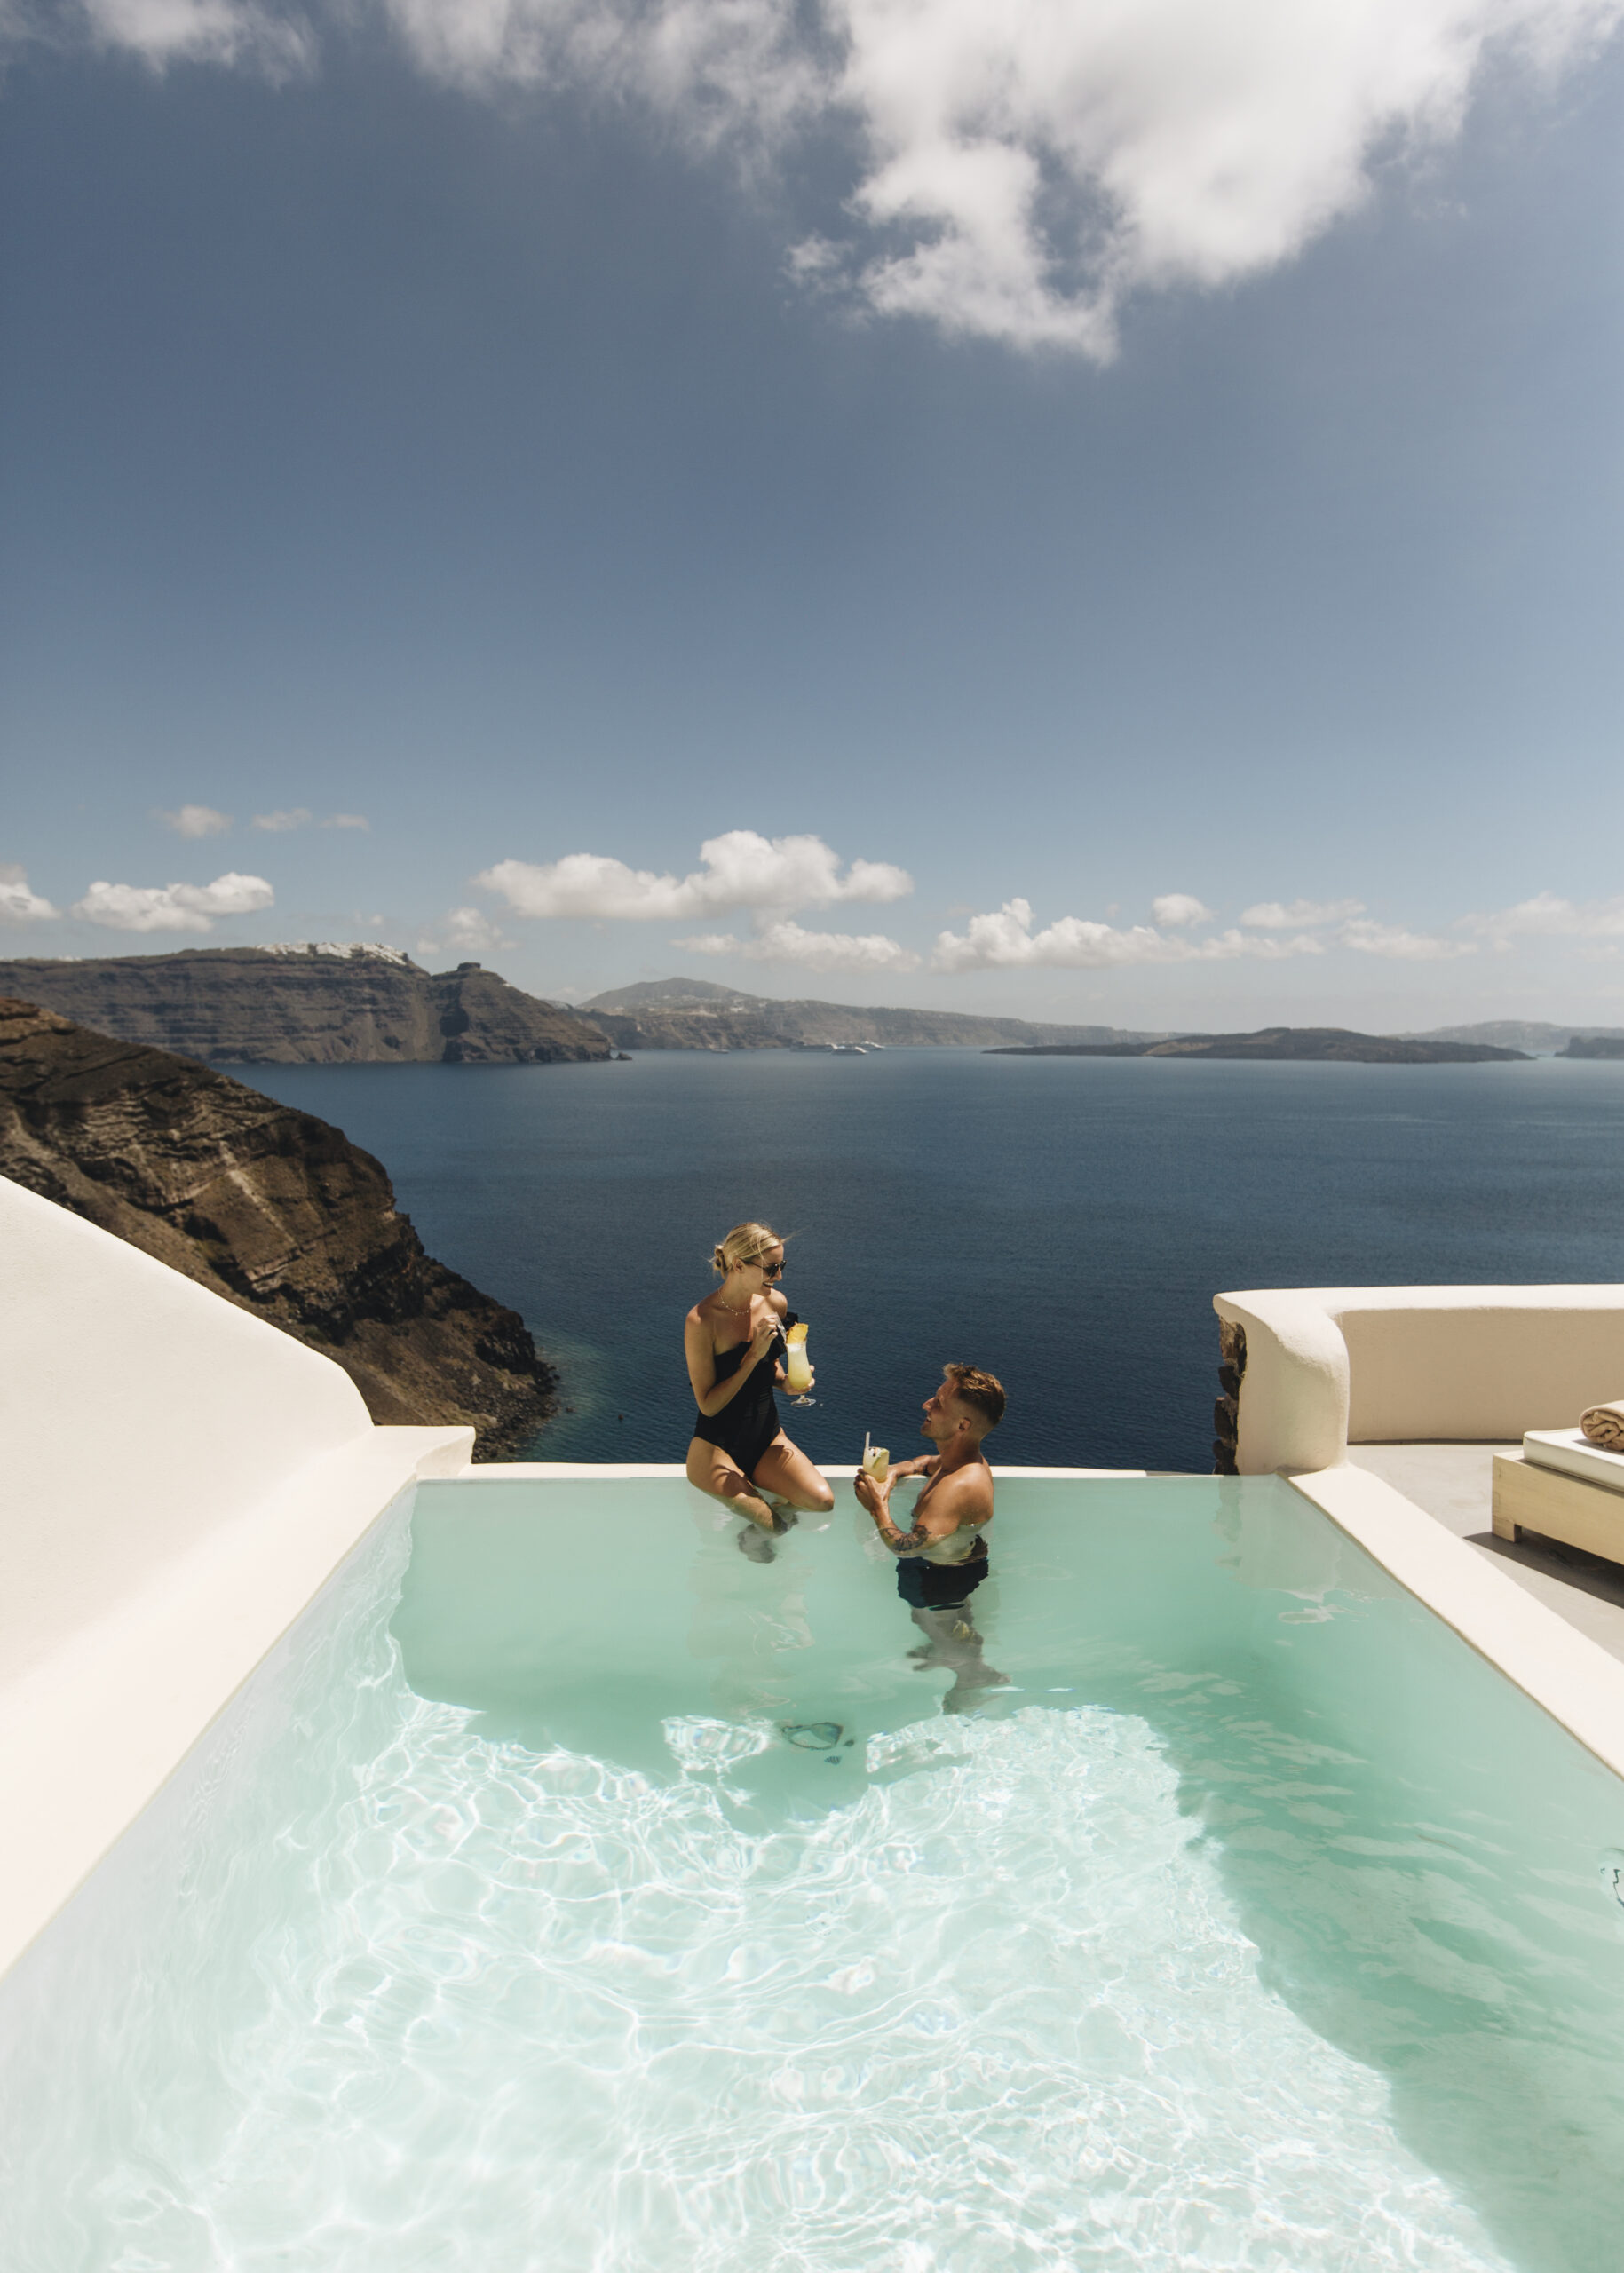 Couple enjoying holidays in the private infinity pool of Hollistic Villa at Mystique Hotel